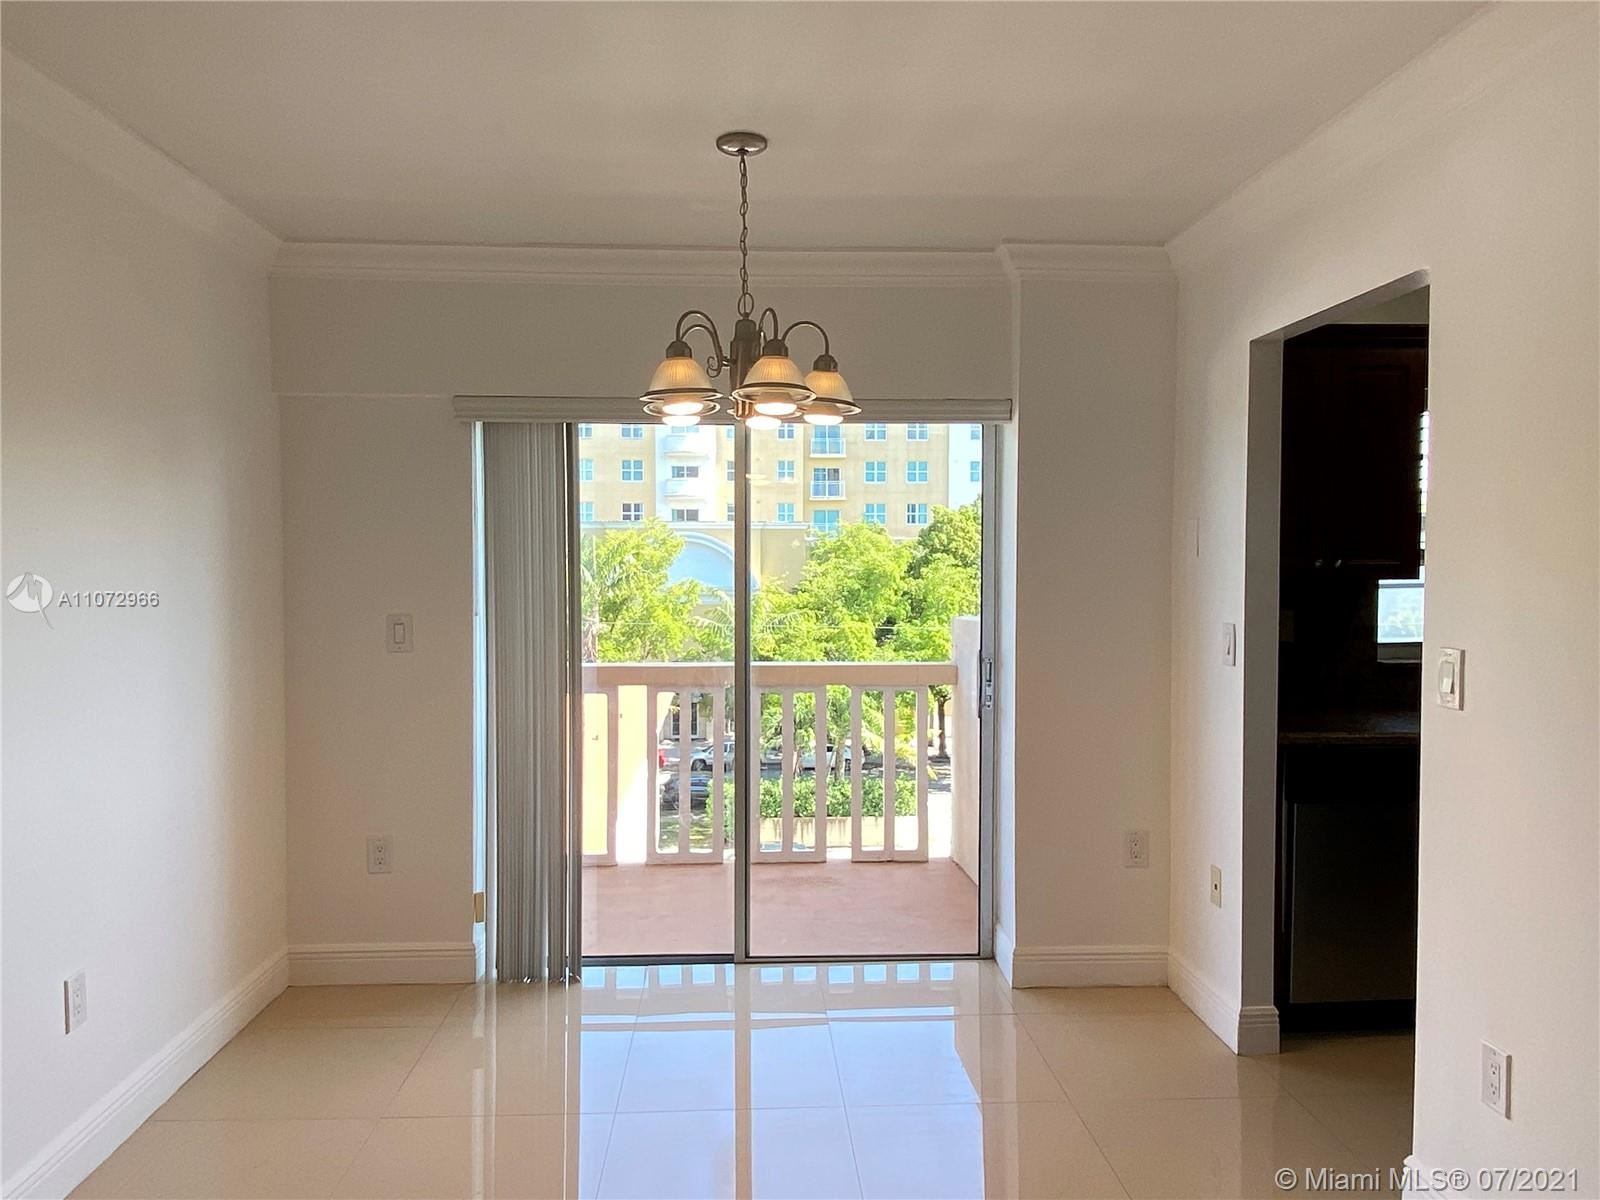 Photo of Coral Gables, FL 33134 (MLS # A11072966)